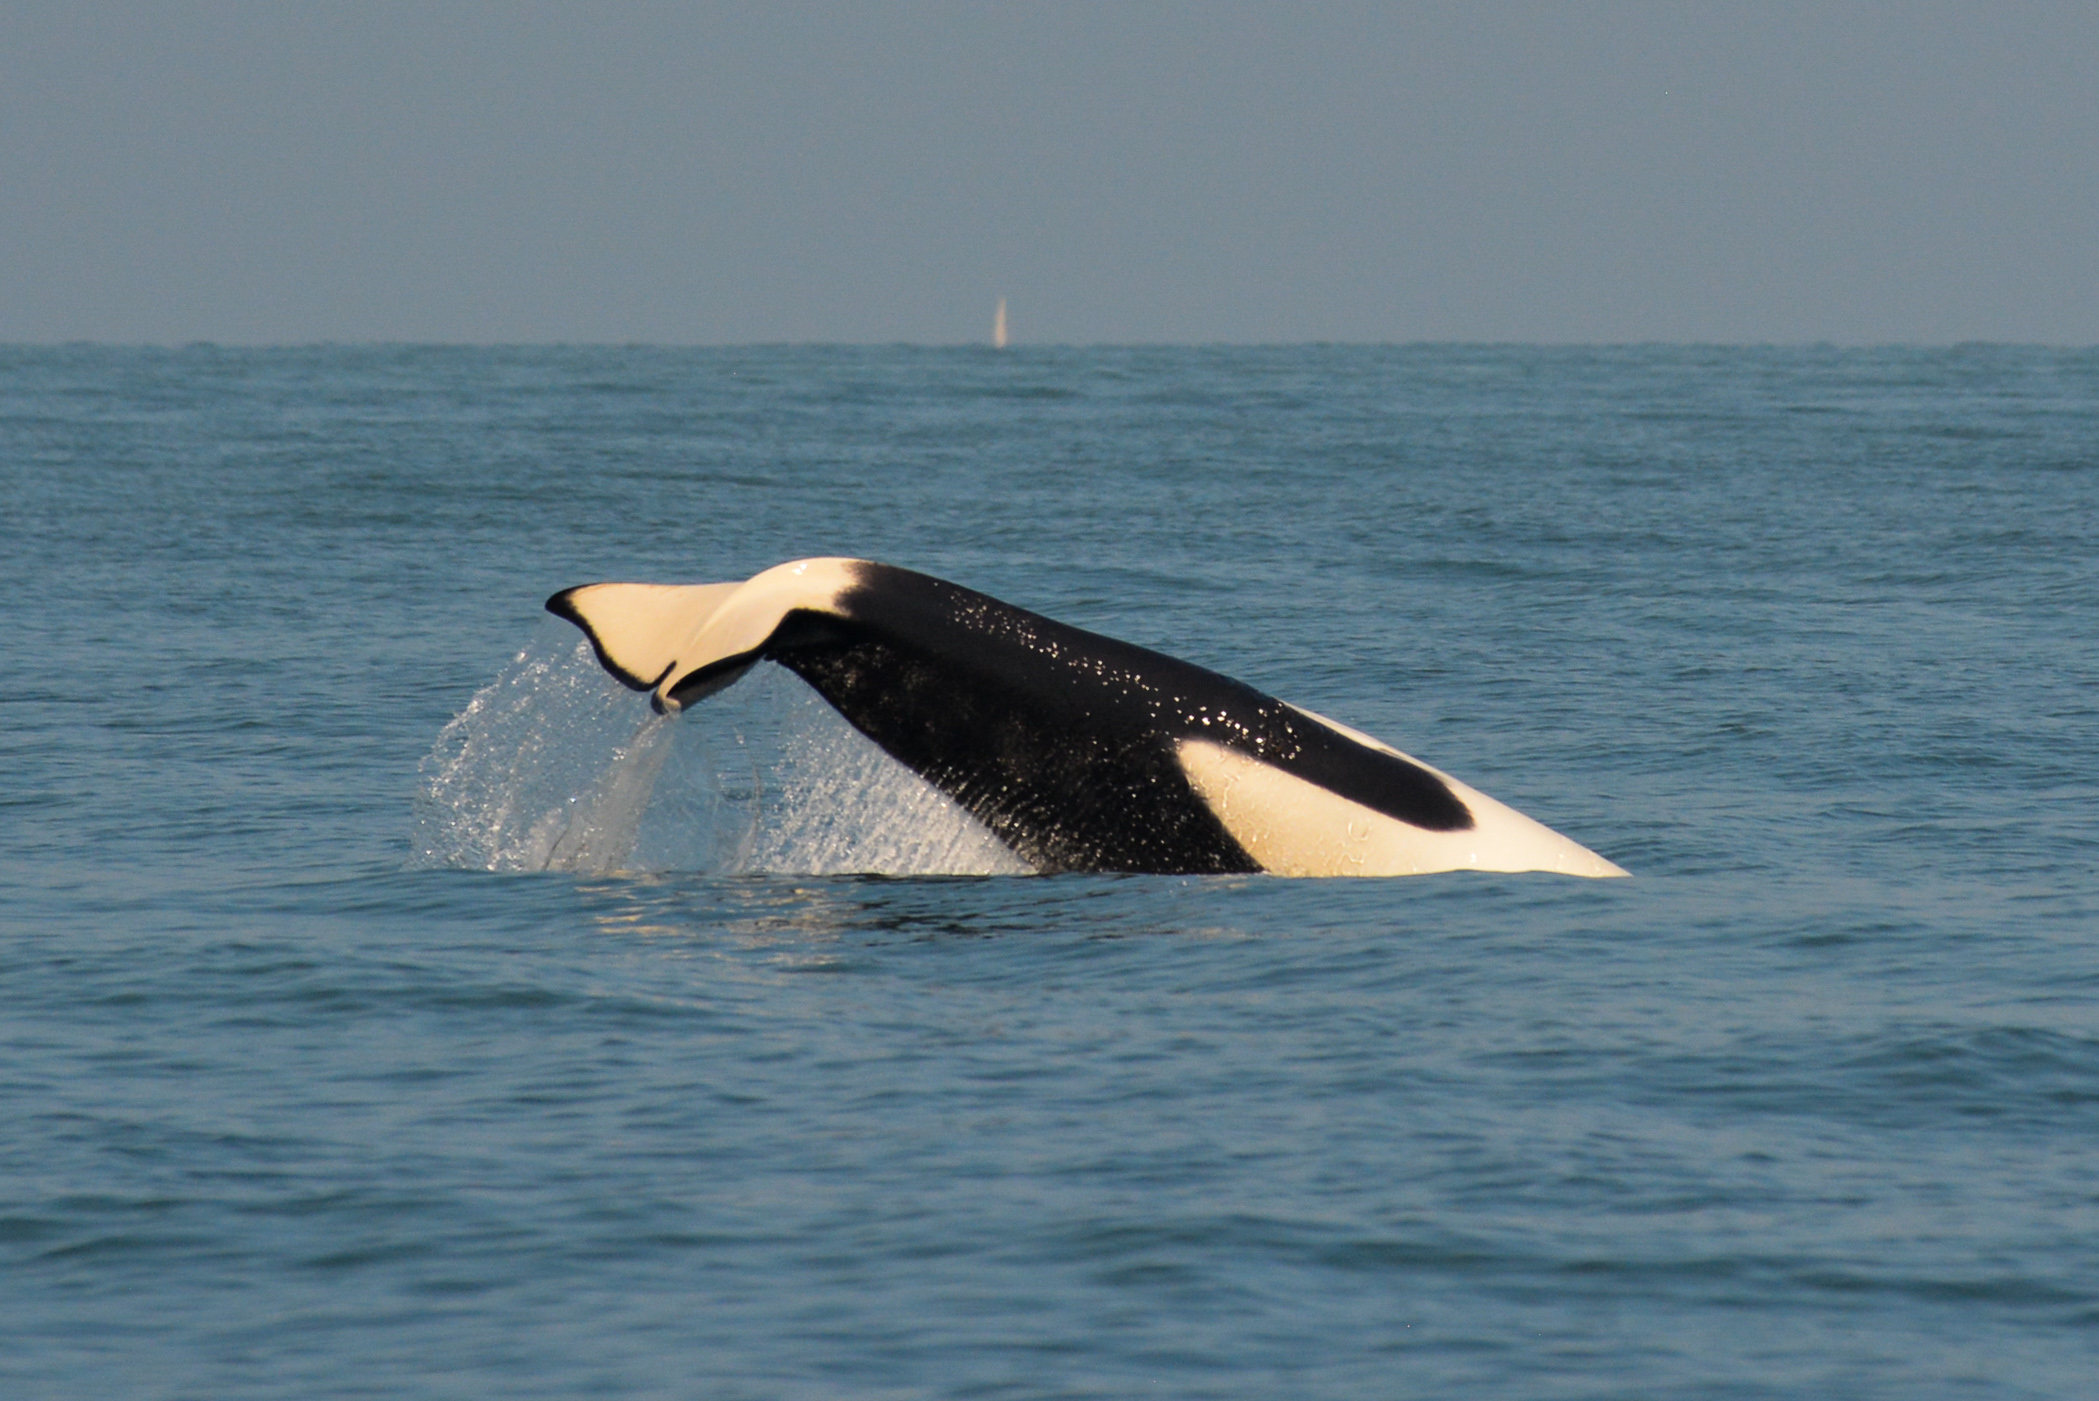 Action shot of an orca cartwheel! Photo by Val Watson - 10:30 tour.